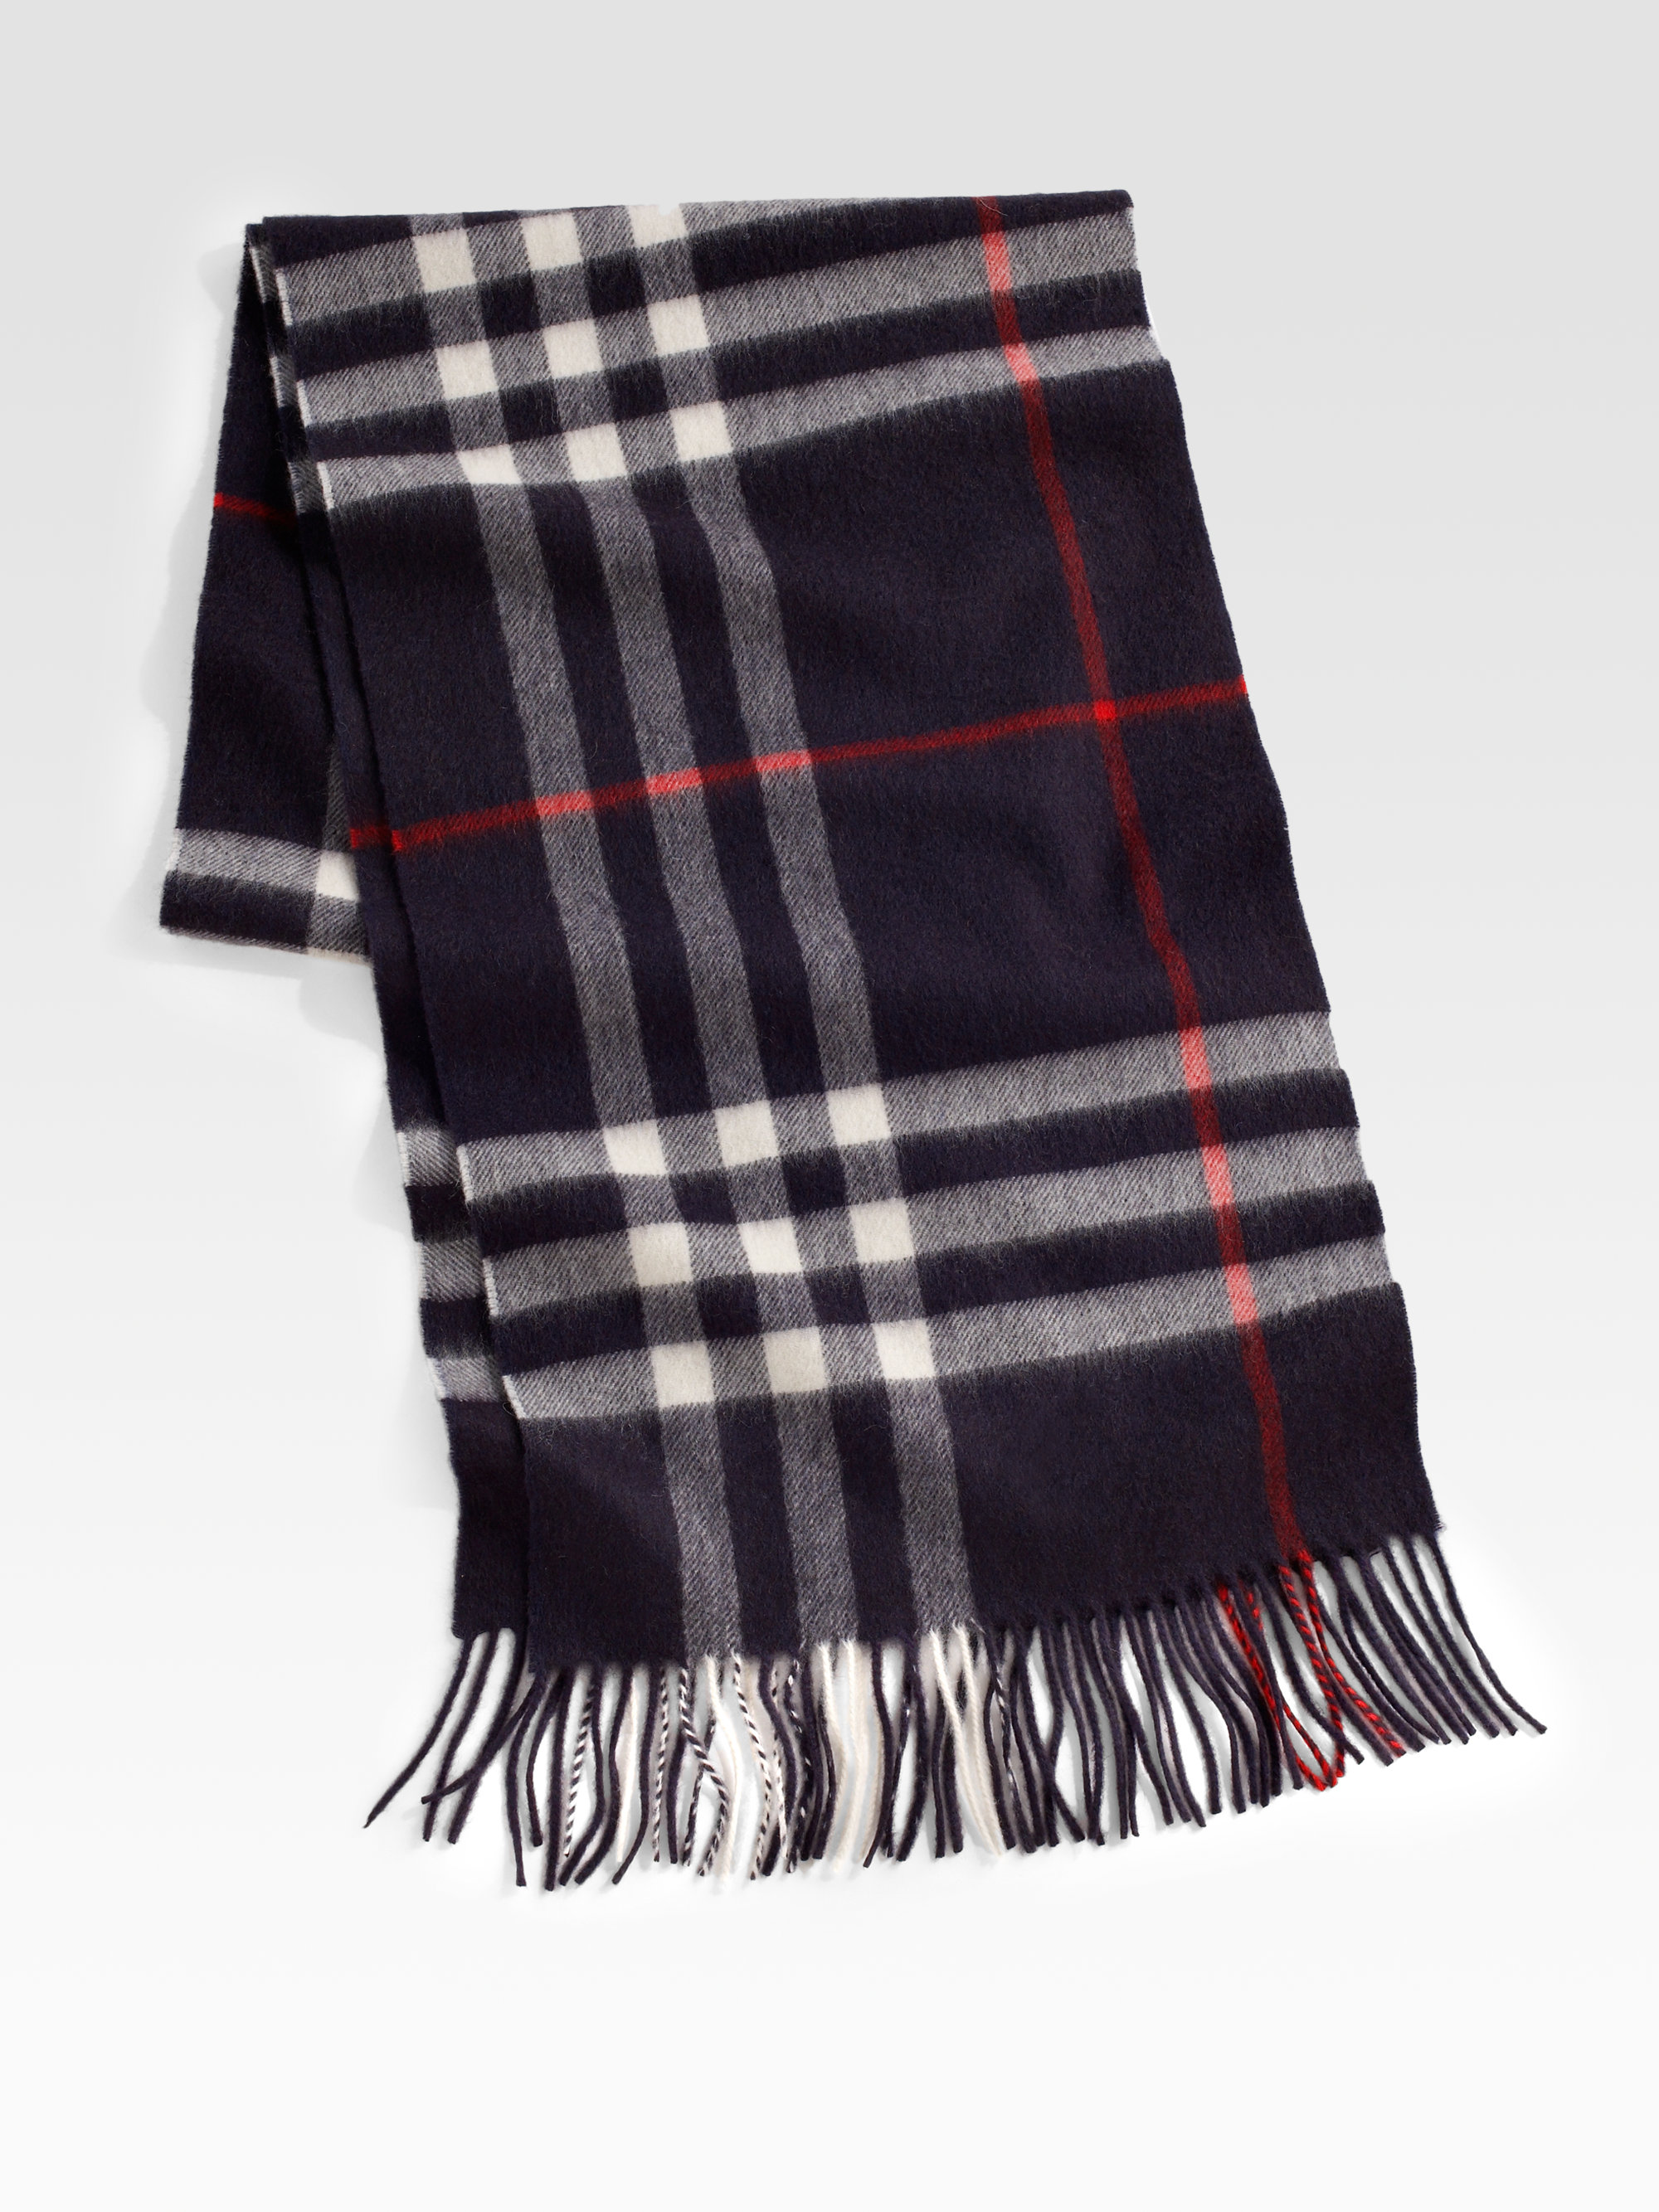 6047ae24036 ... top quality lyst burberry cashmere check scarf in black for men 7459e  817ab